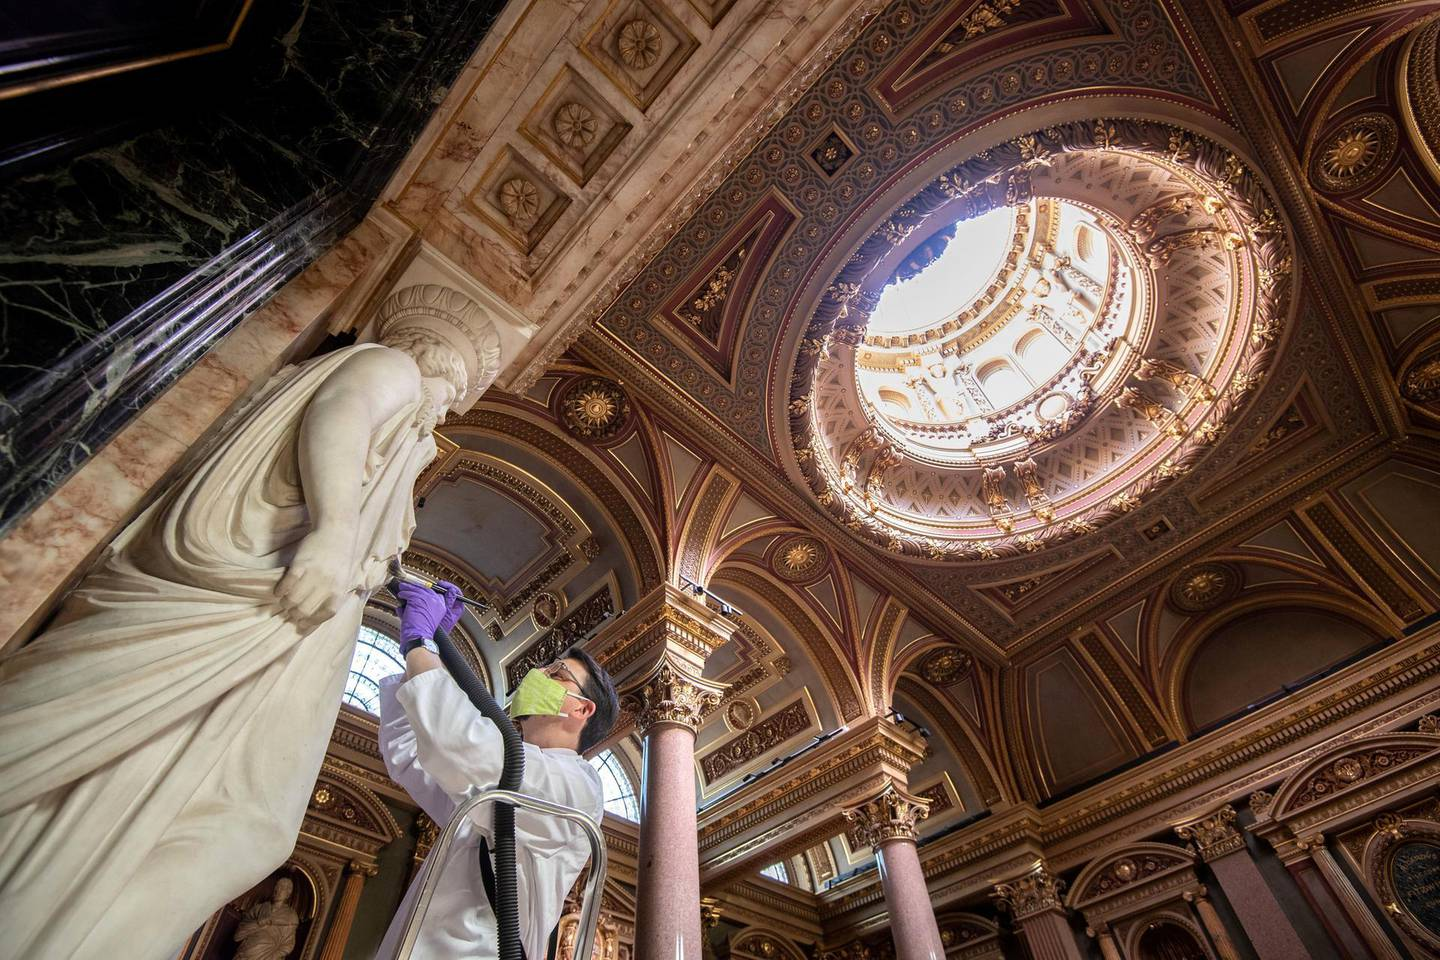 Conservator Edward Cheese cleans marble sculptures at the Fitzwilliam Museum in Cambridge as they make final preparations to reopen to the general public following the easing of lockdown restrictions in England. (Photo by Joe Giddens/PA Images via Getty Images)